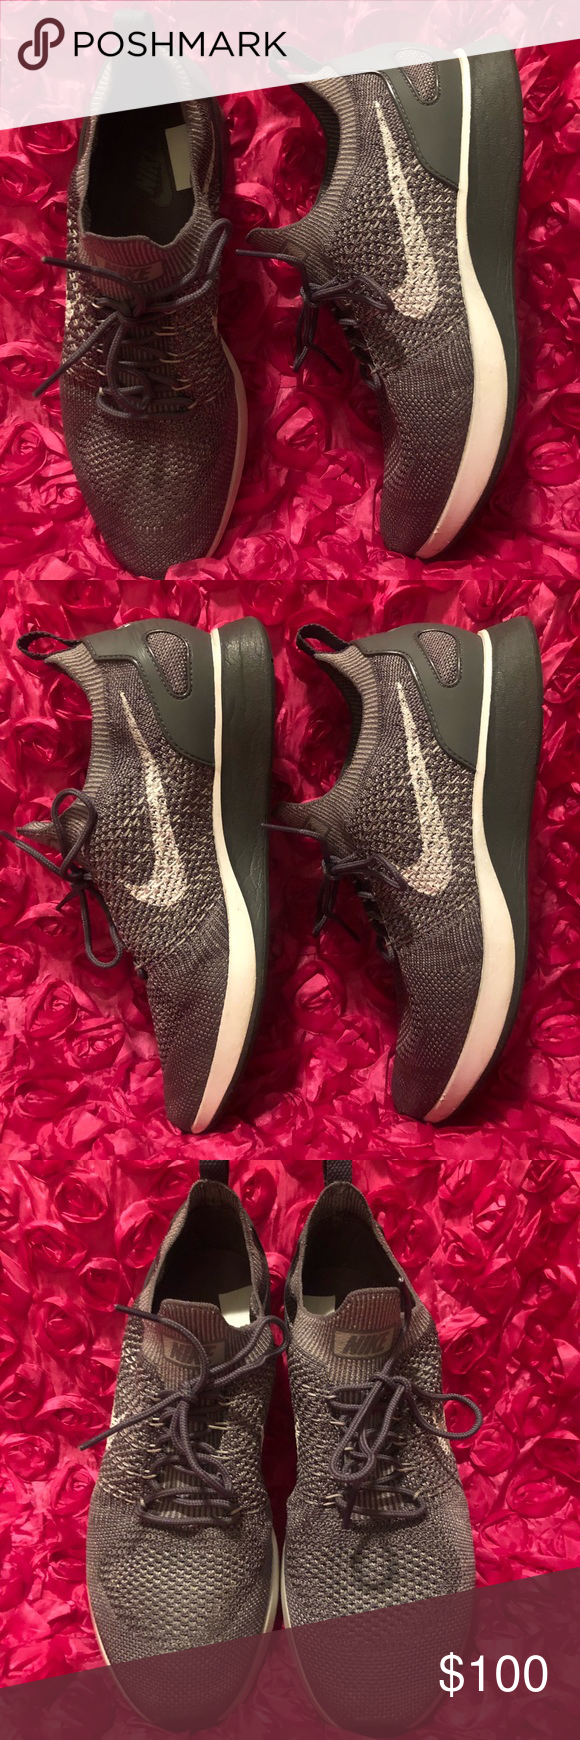 f8a6c4dcdded Men s Shoes Nike Air Zoom Mariah Flyknit Racer Excellent condition like new  used only once no box 📦 Color Gunsmoke Atmosphere Grey Dark Grey White Nike  ...